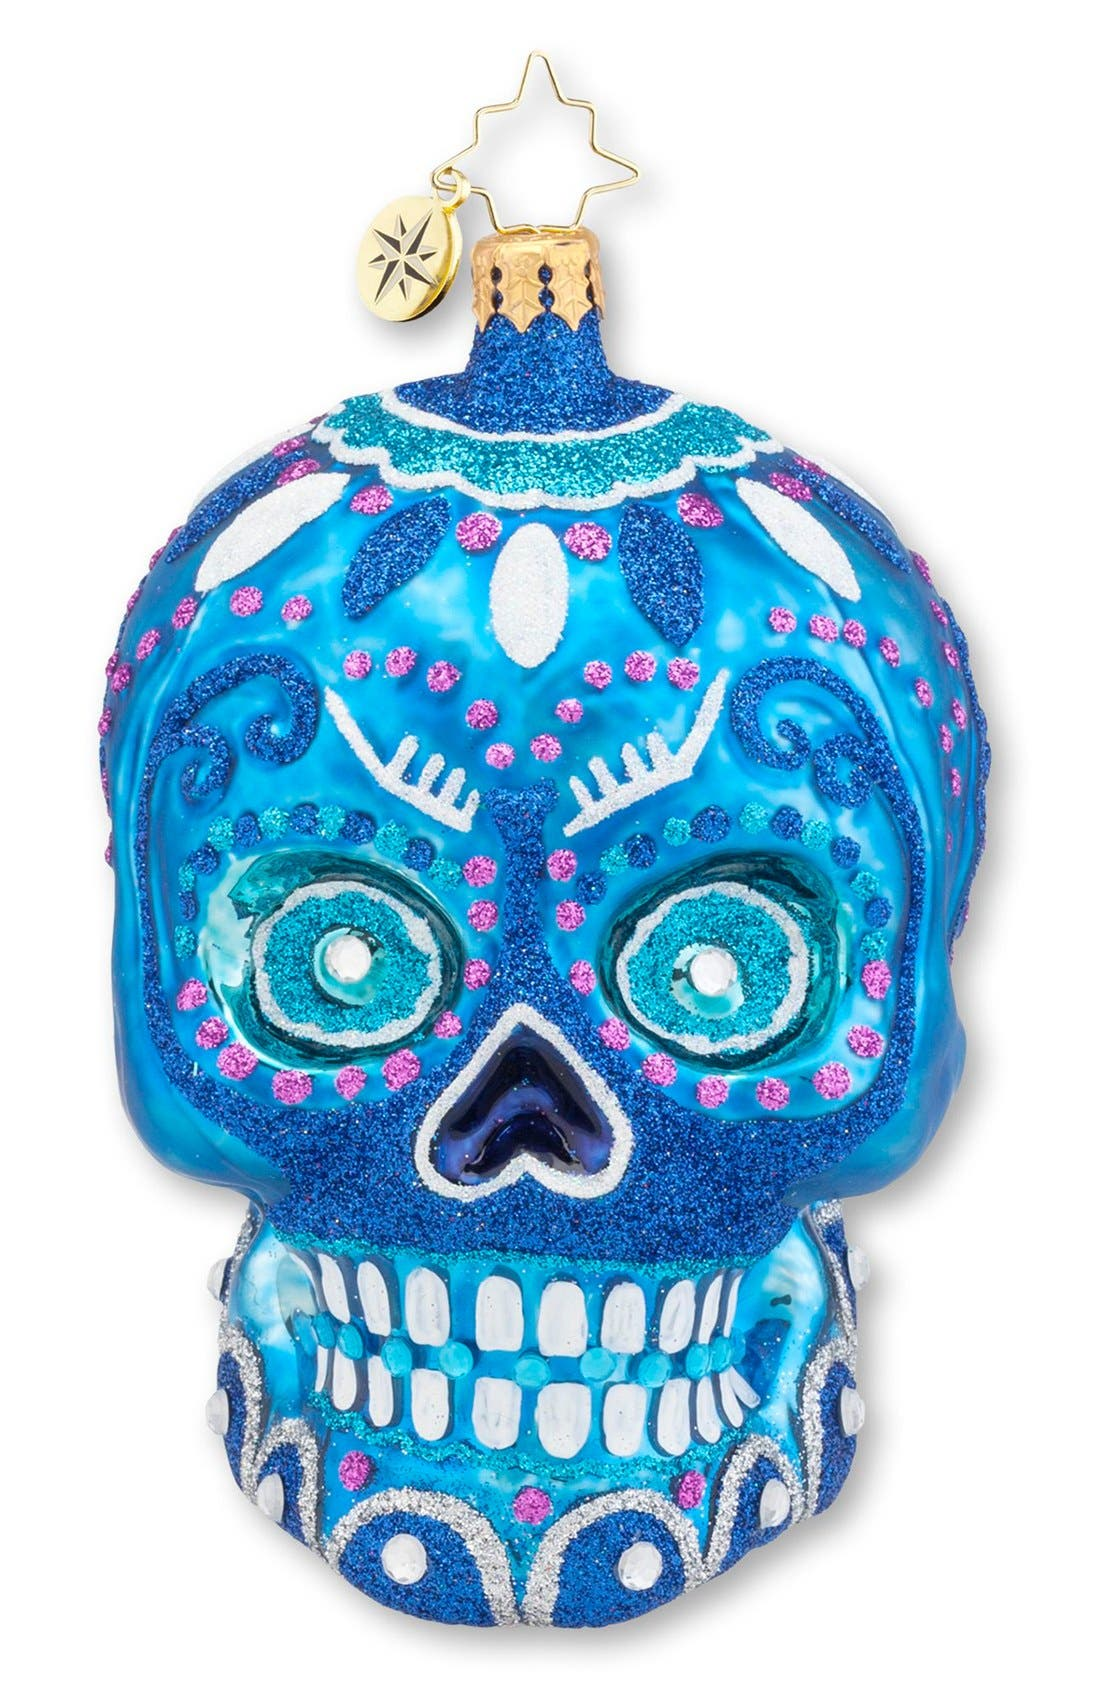 Alternate Image 1 Selected - Christopher Radko 'La Calavera' Skull Ornament